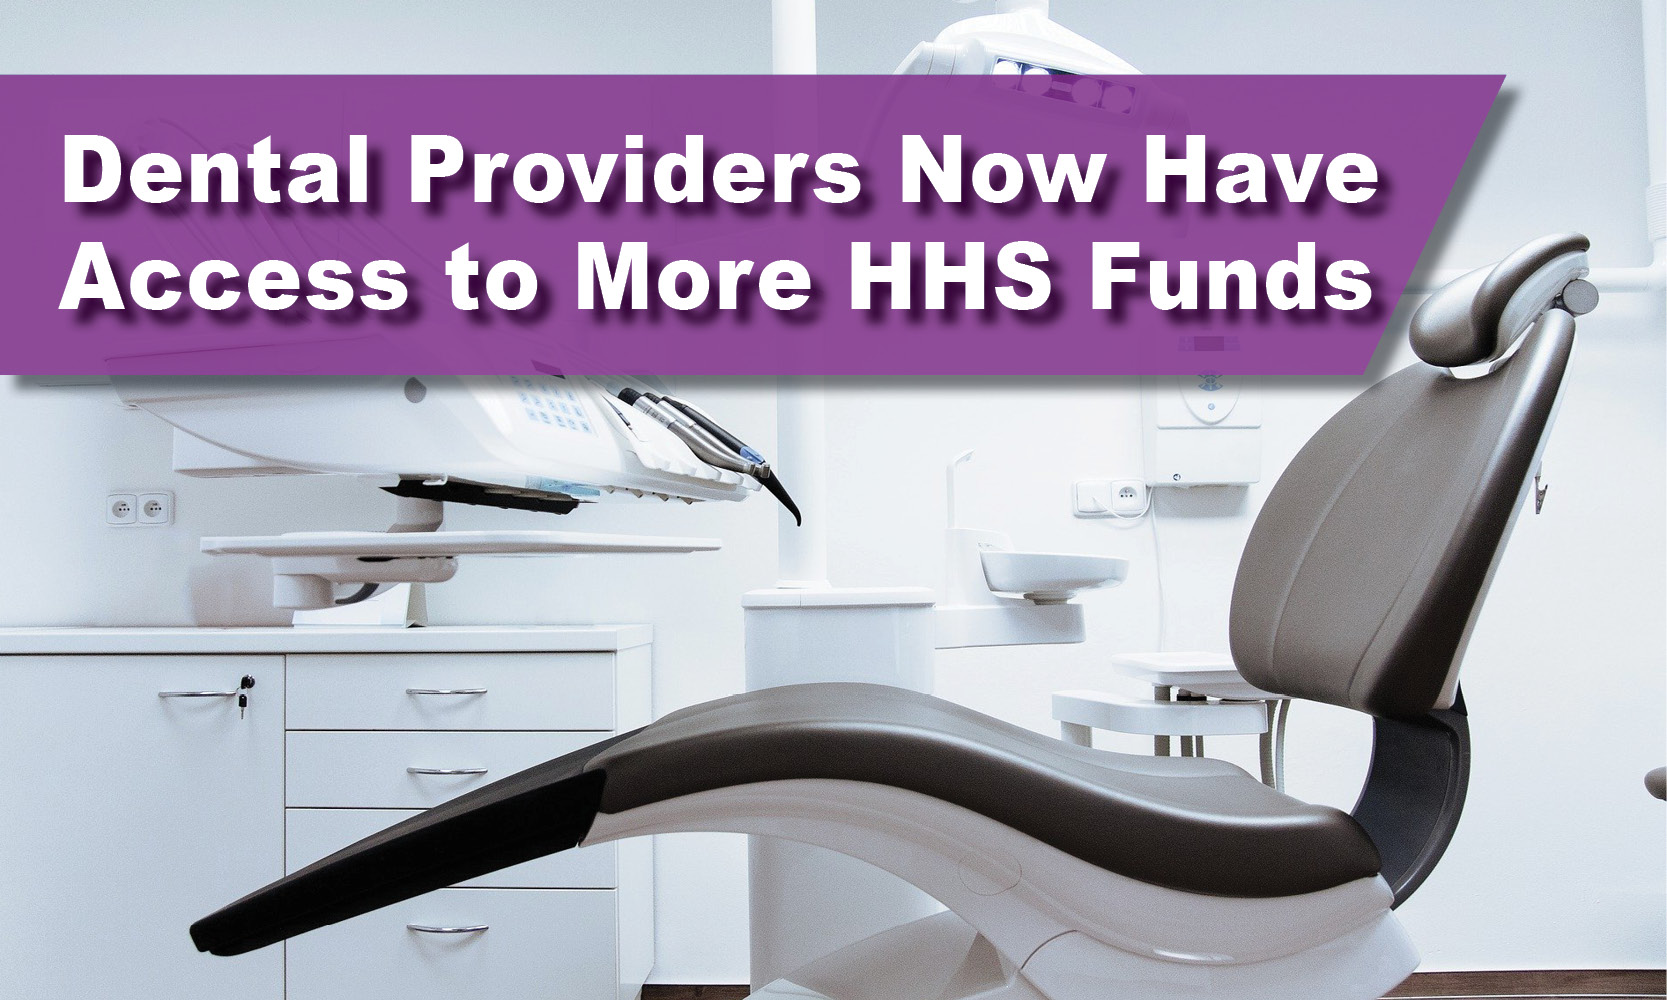 Dental Providers Now Have Access to More HHS Funds